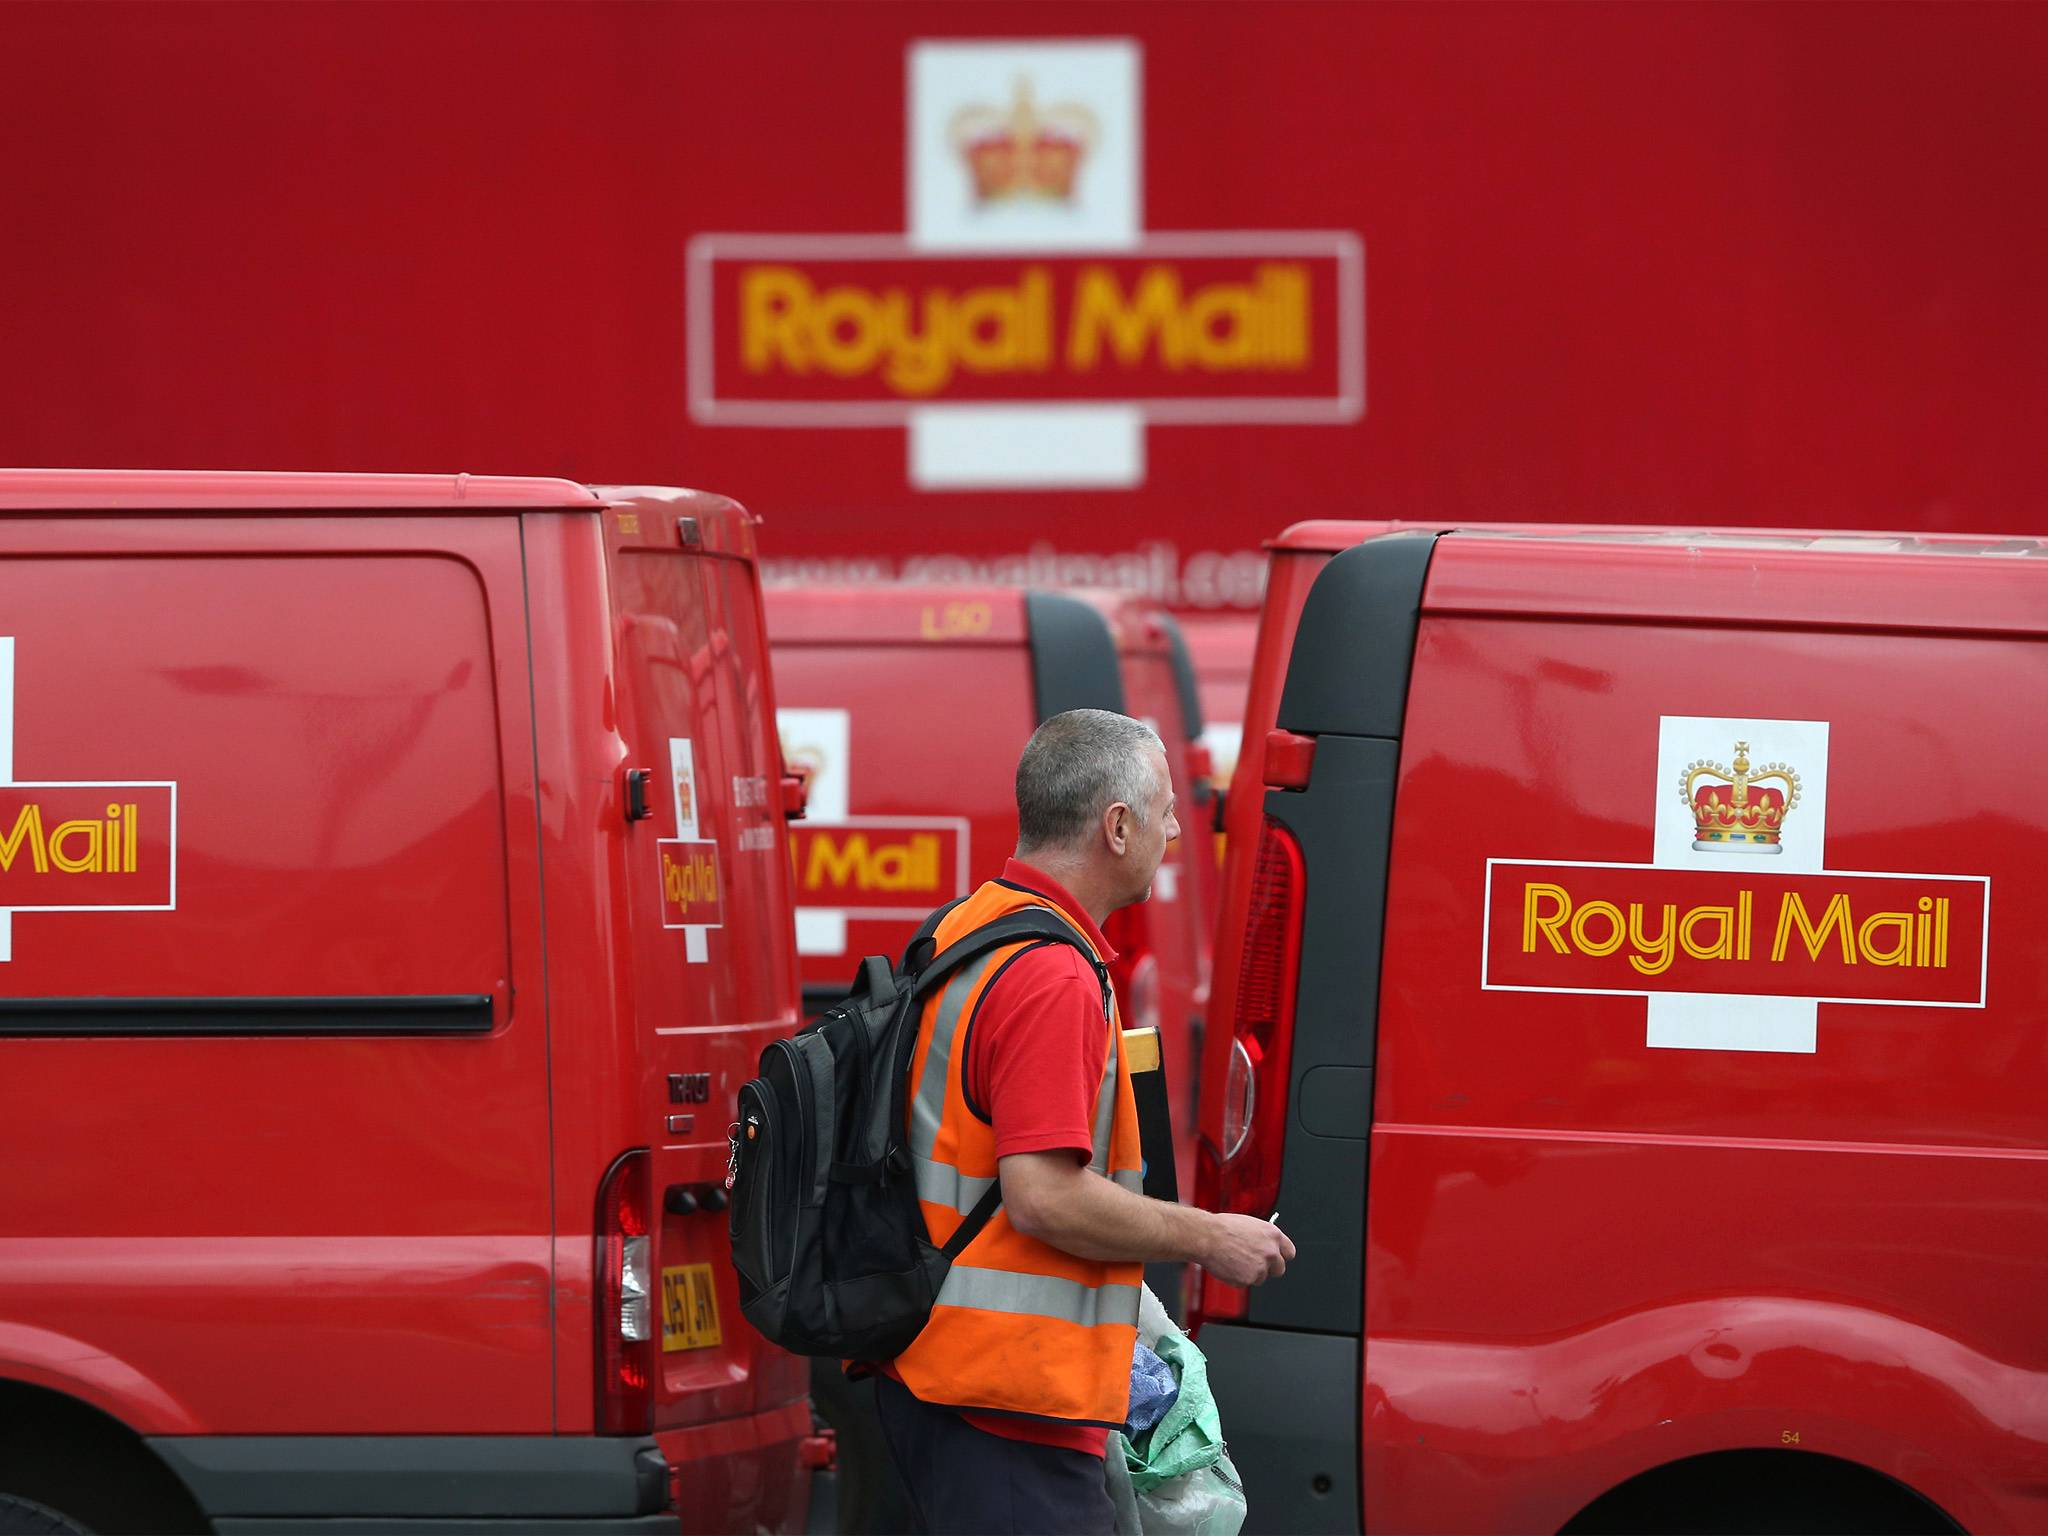 Revealed goldman sachs clients 12m royal mail coup the independent falaconquin